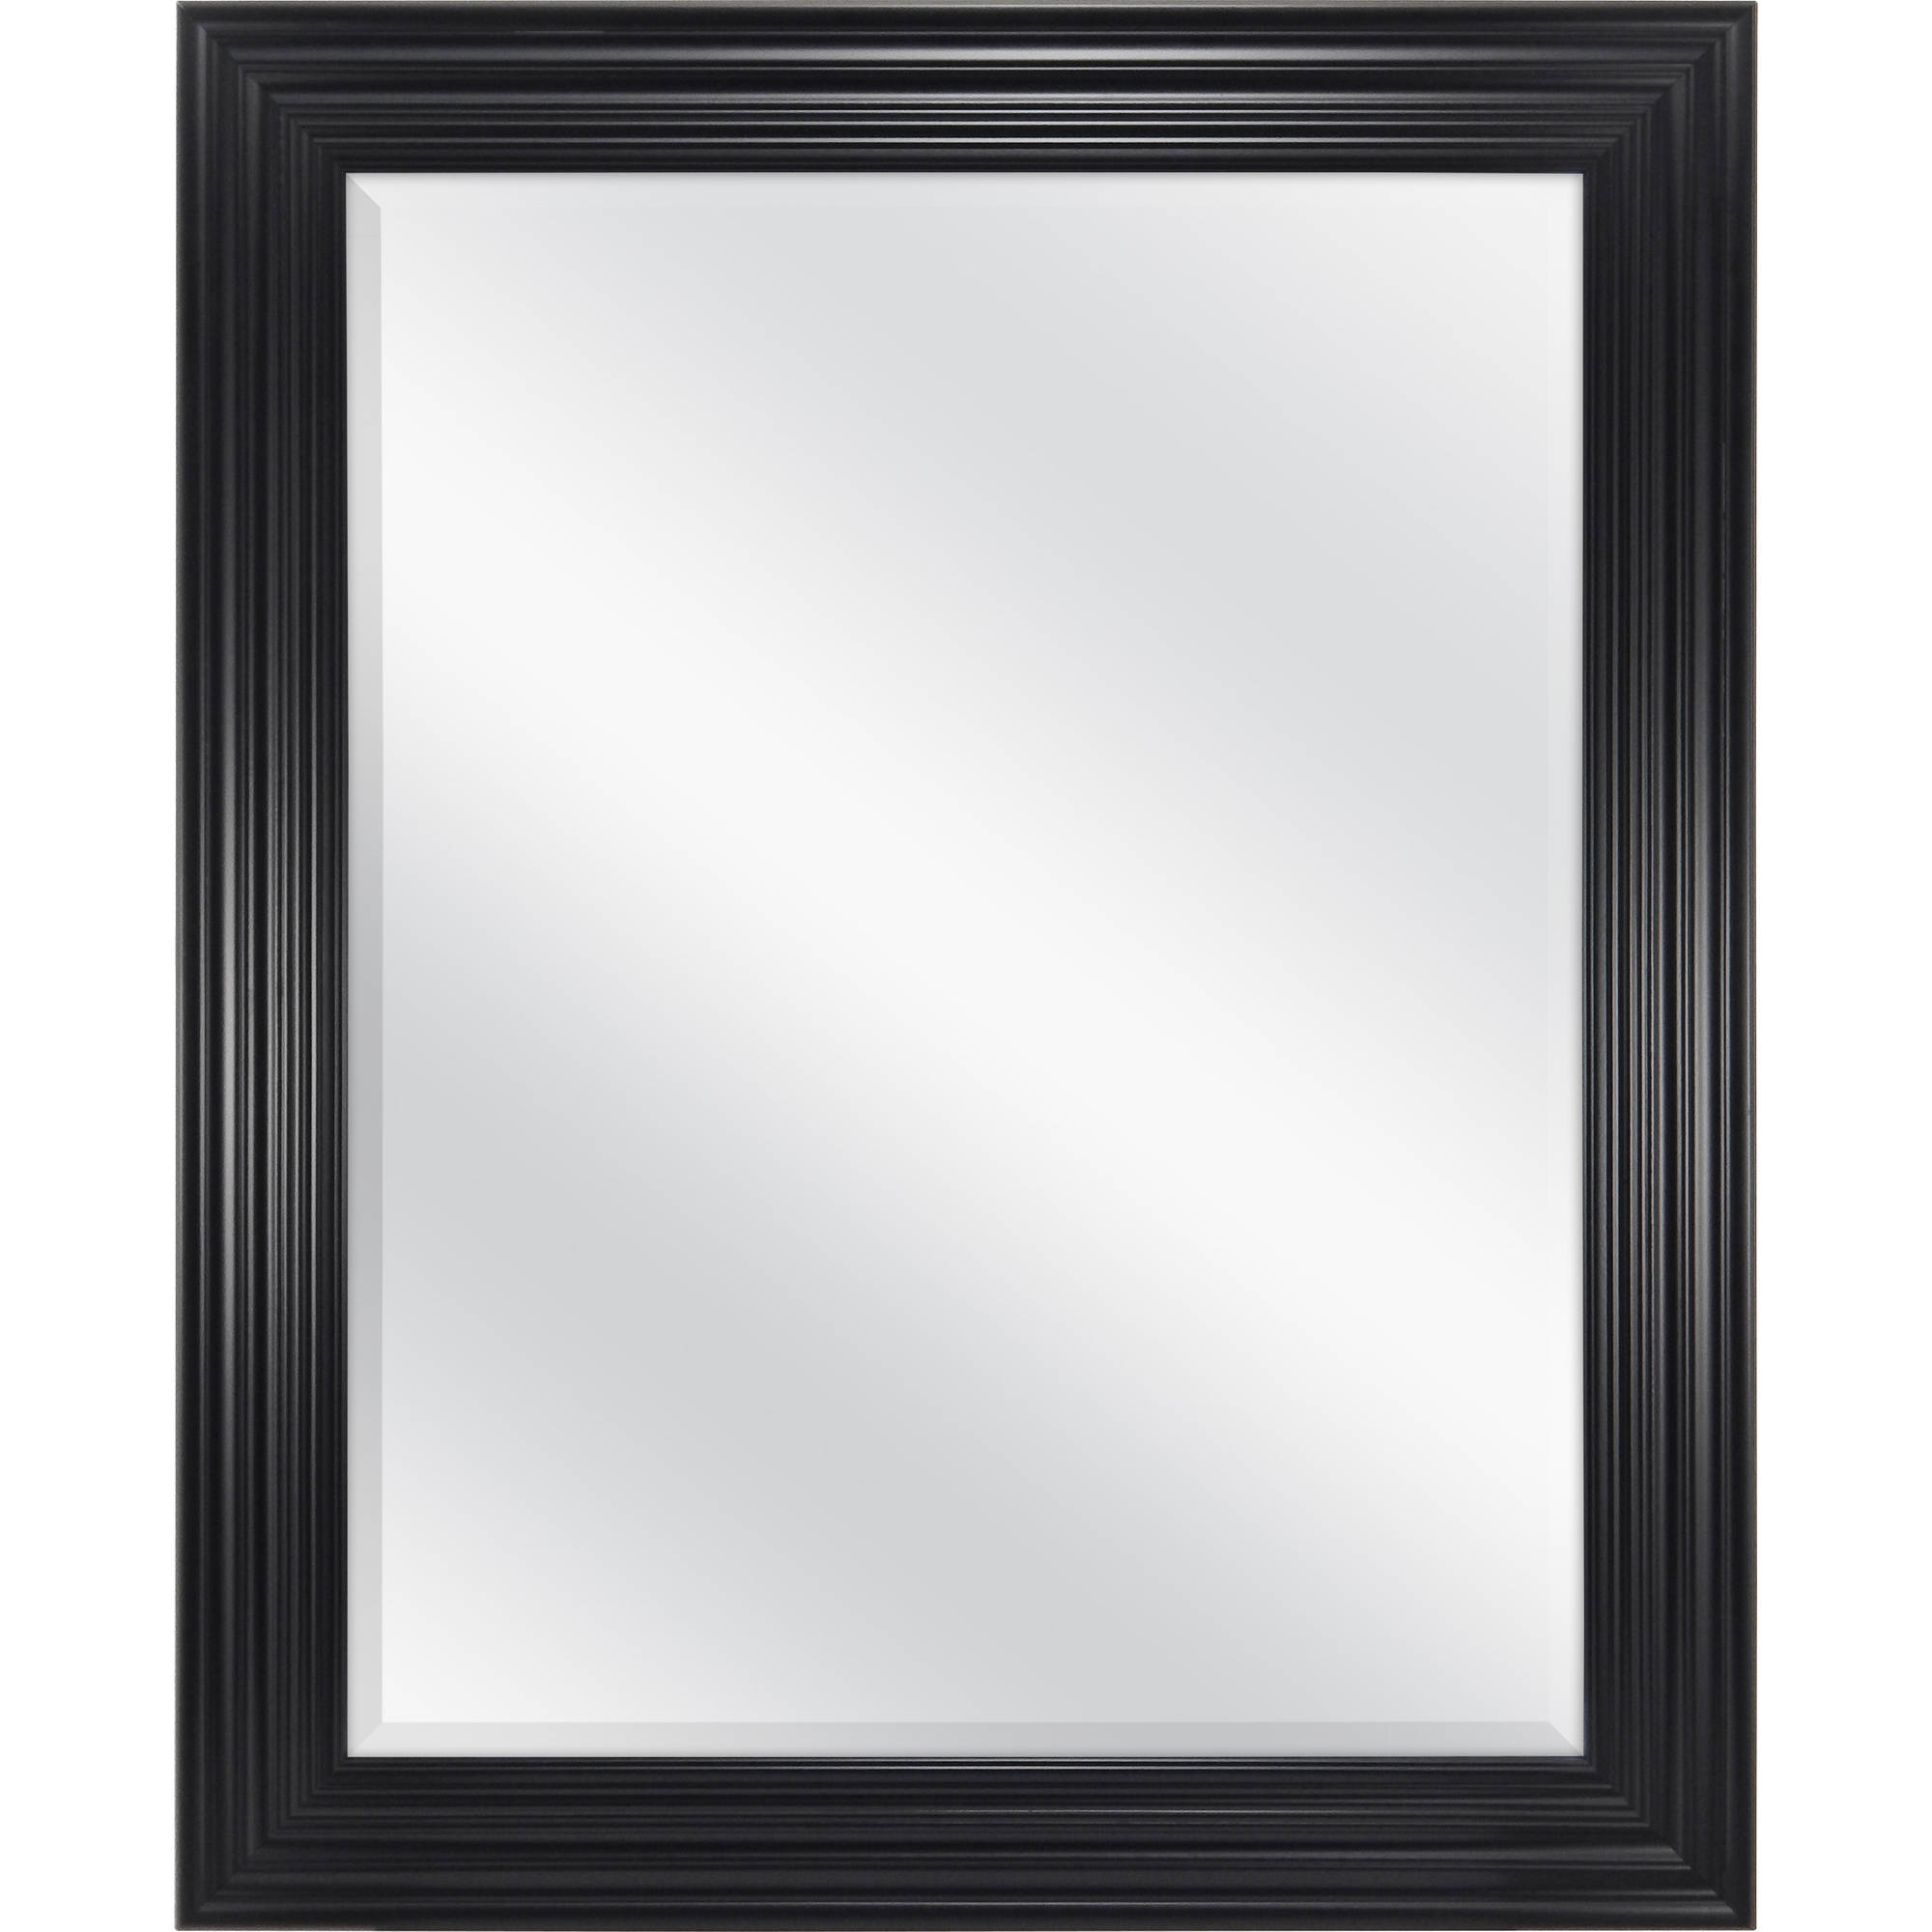 """Mainstays Classic Beveled Wall Mirror, 27"""" x 33"""", Available in Multiple Colors"""